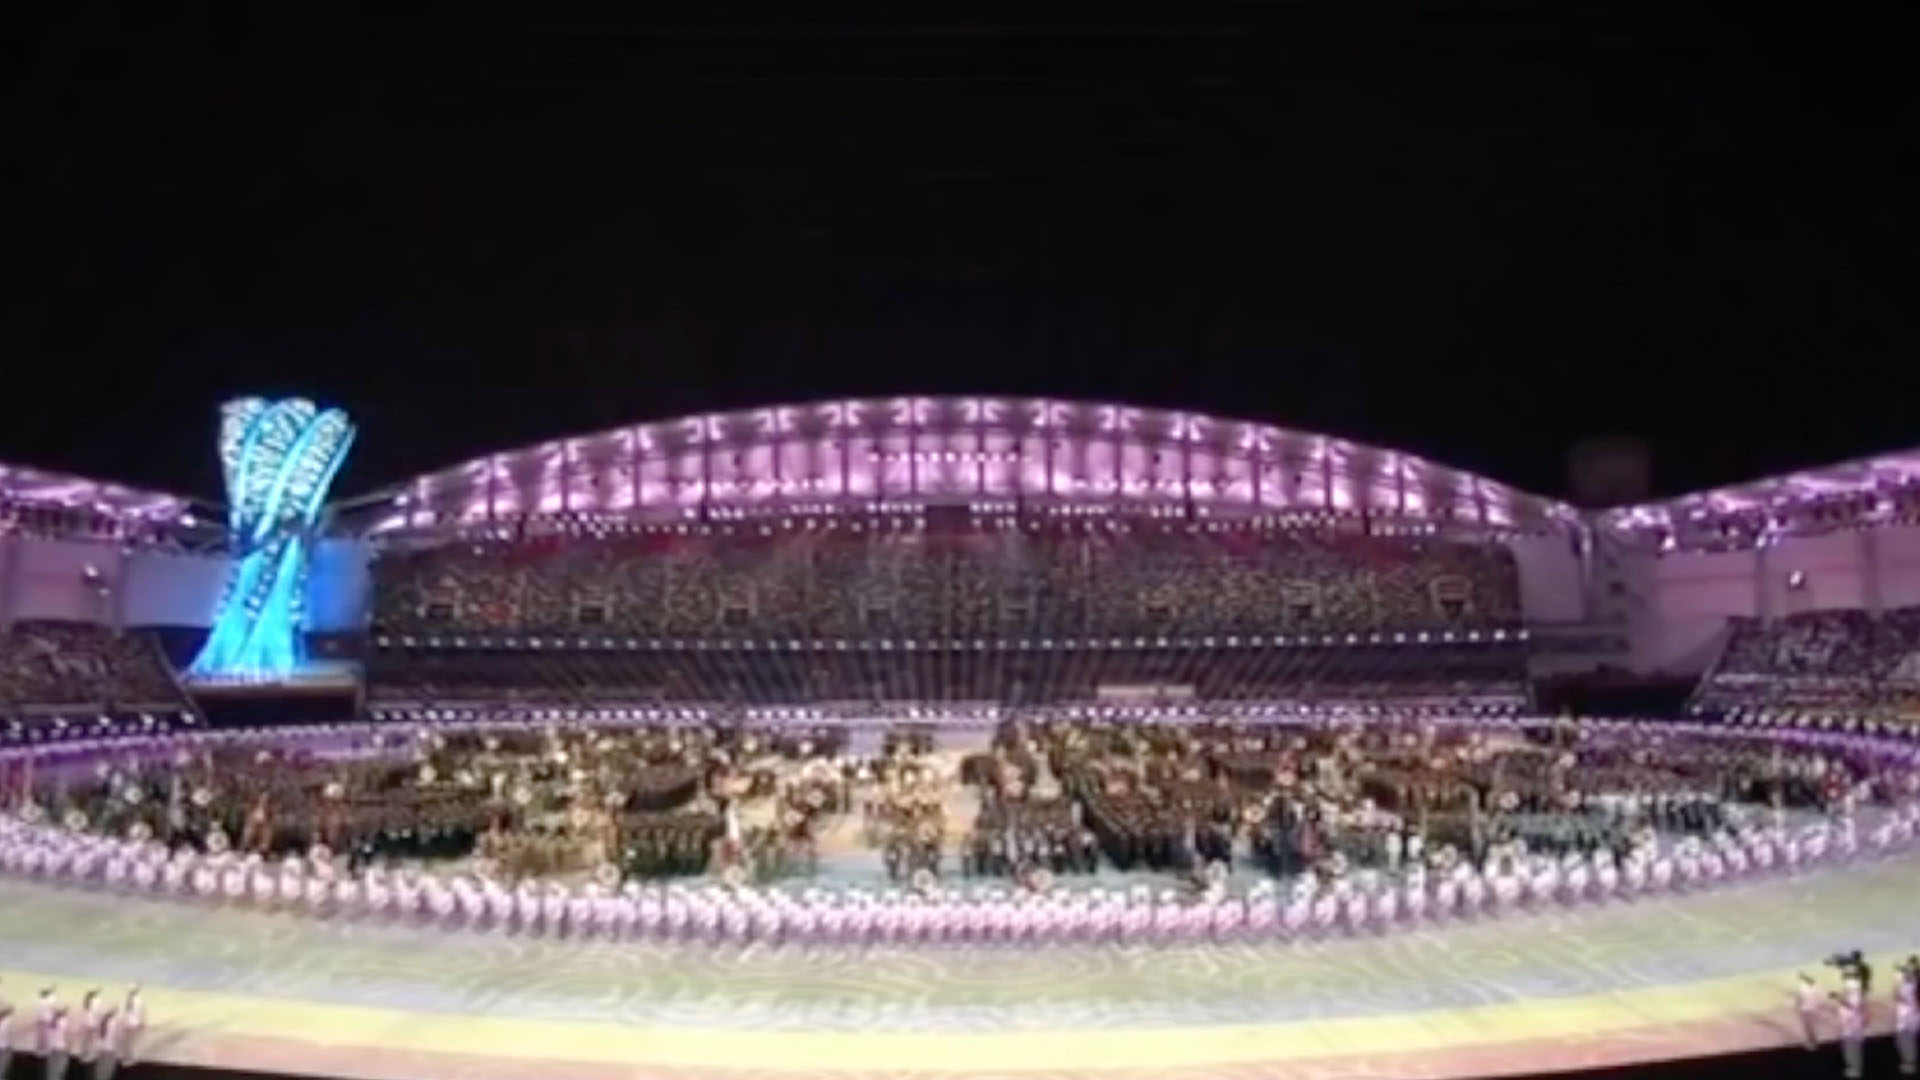 Chinese whistleblower claims COVID-19 was deliberately spread at October 2019 Military World Games in Wuhan